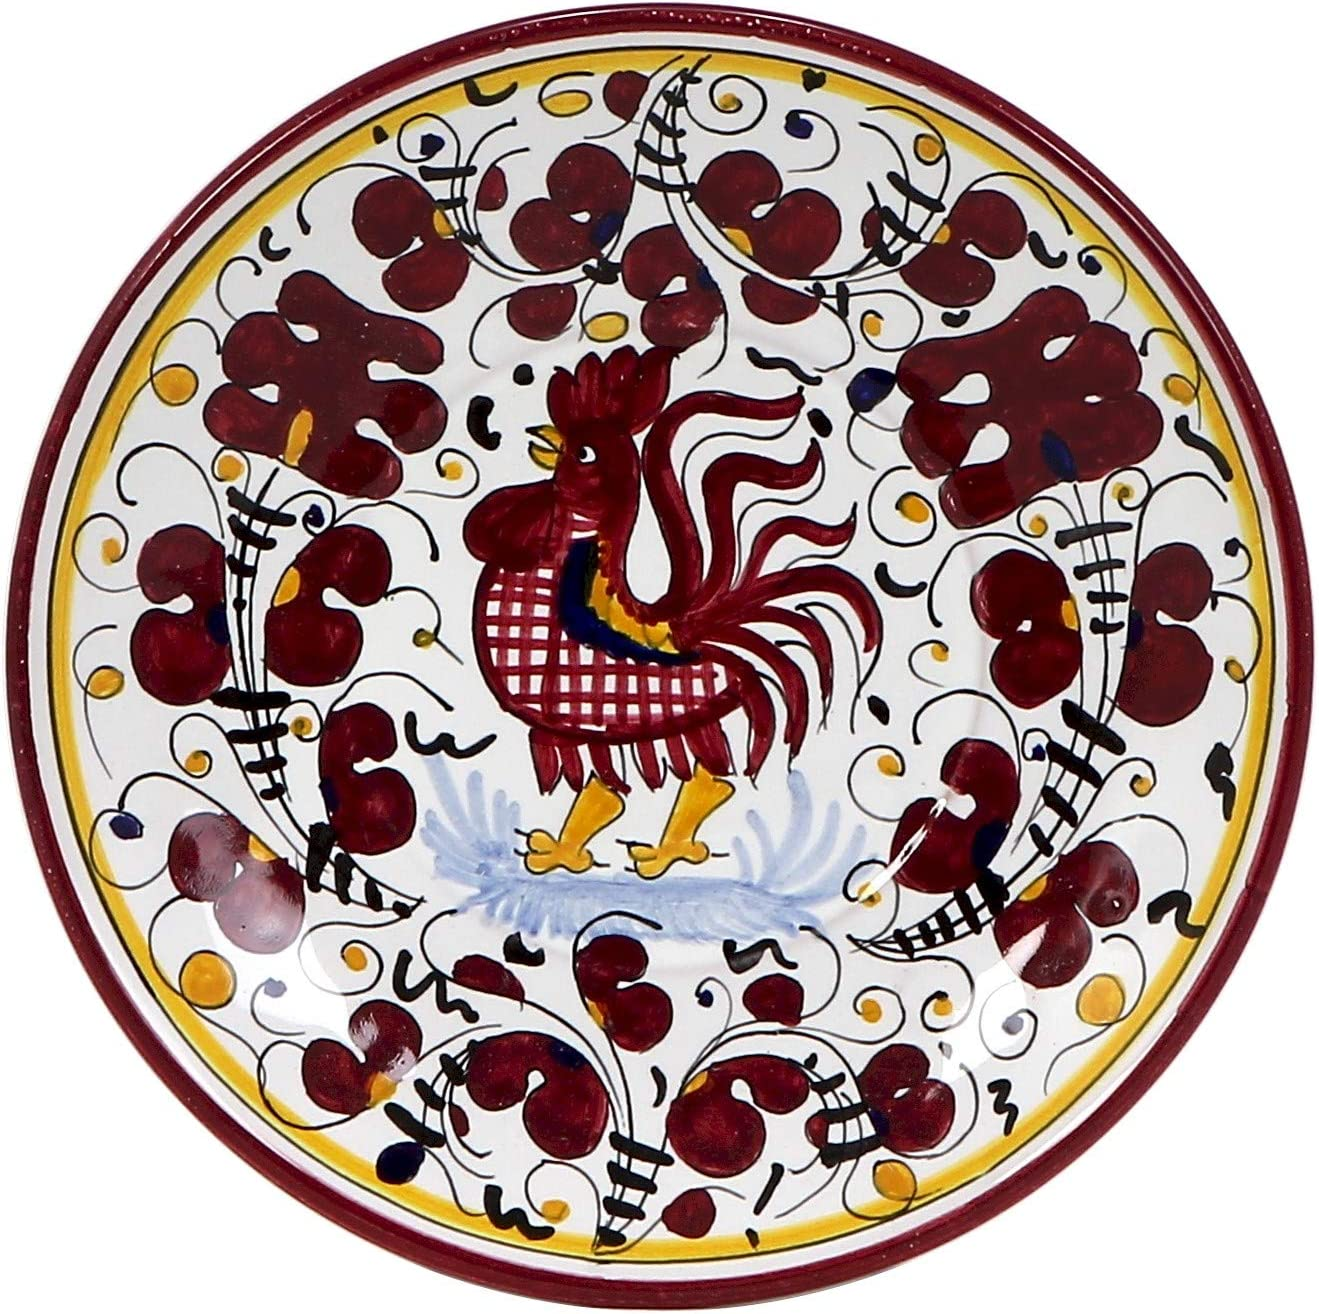 Japan 1 year warranty Maker New ORVIETO RED ROOSTER Small Bread 7 Diam. Plate Saucer